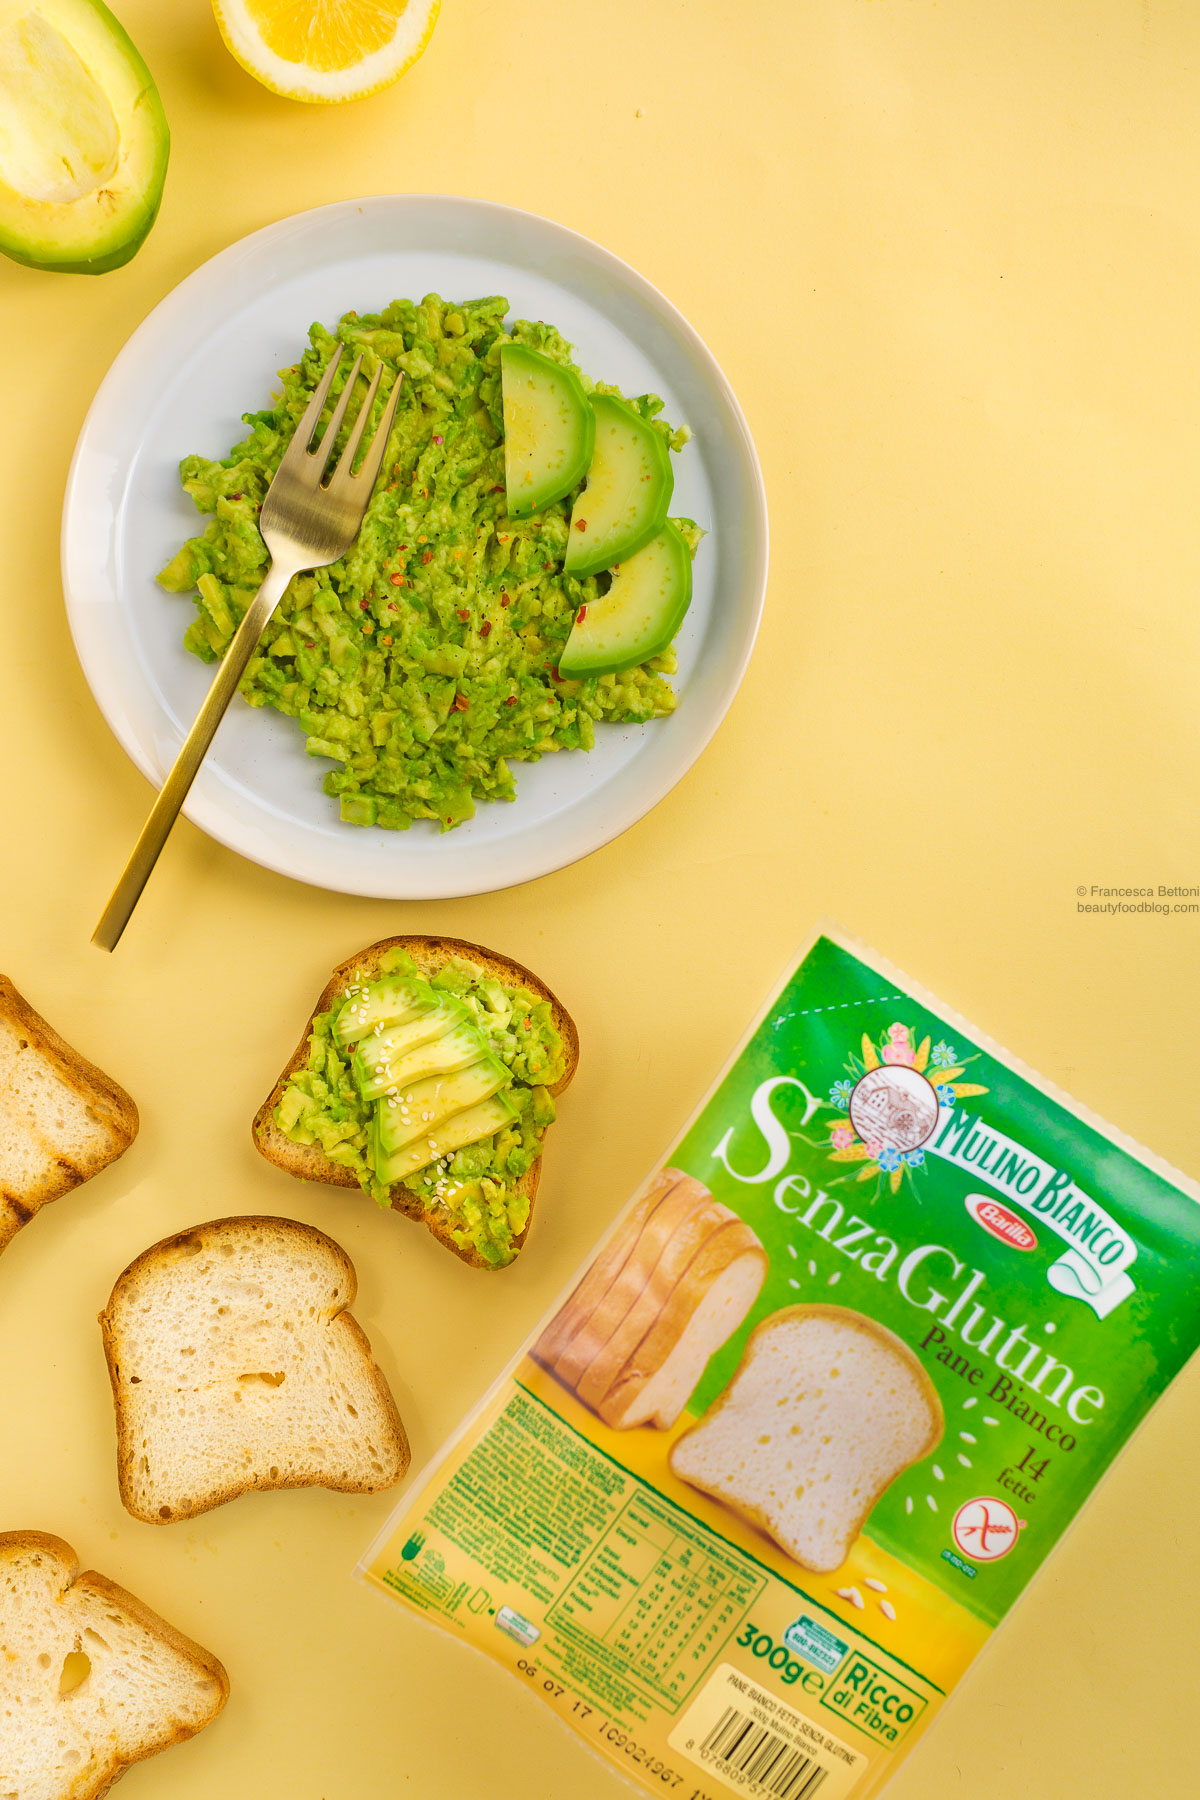 ricetta avocado toast vegan senza glutine ricetta facile - glutenfree vegan avocado toast recipe